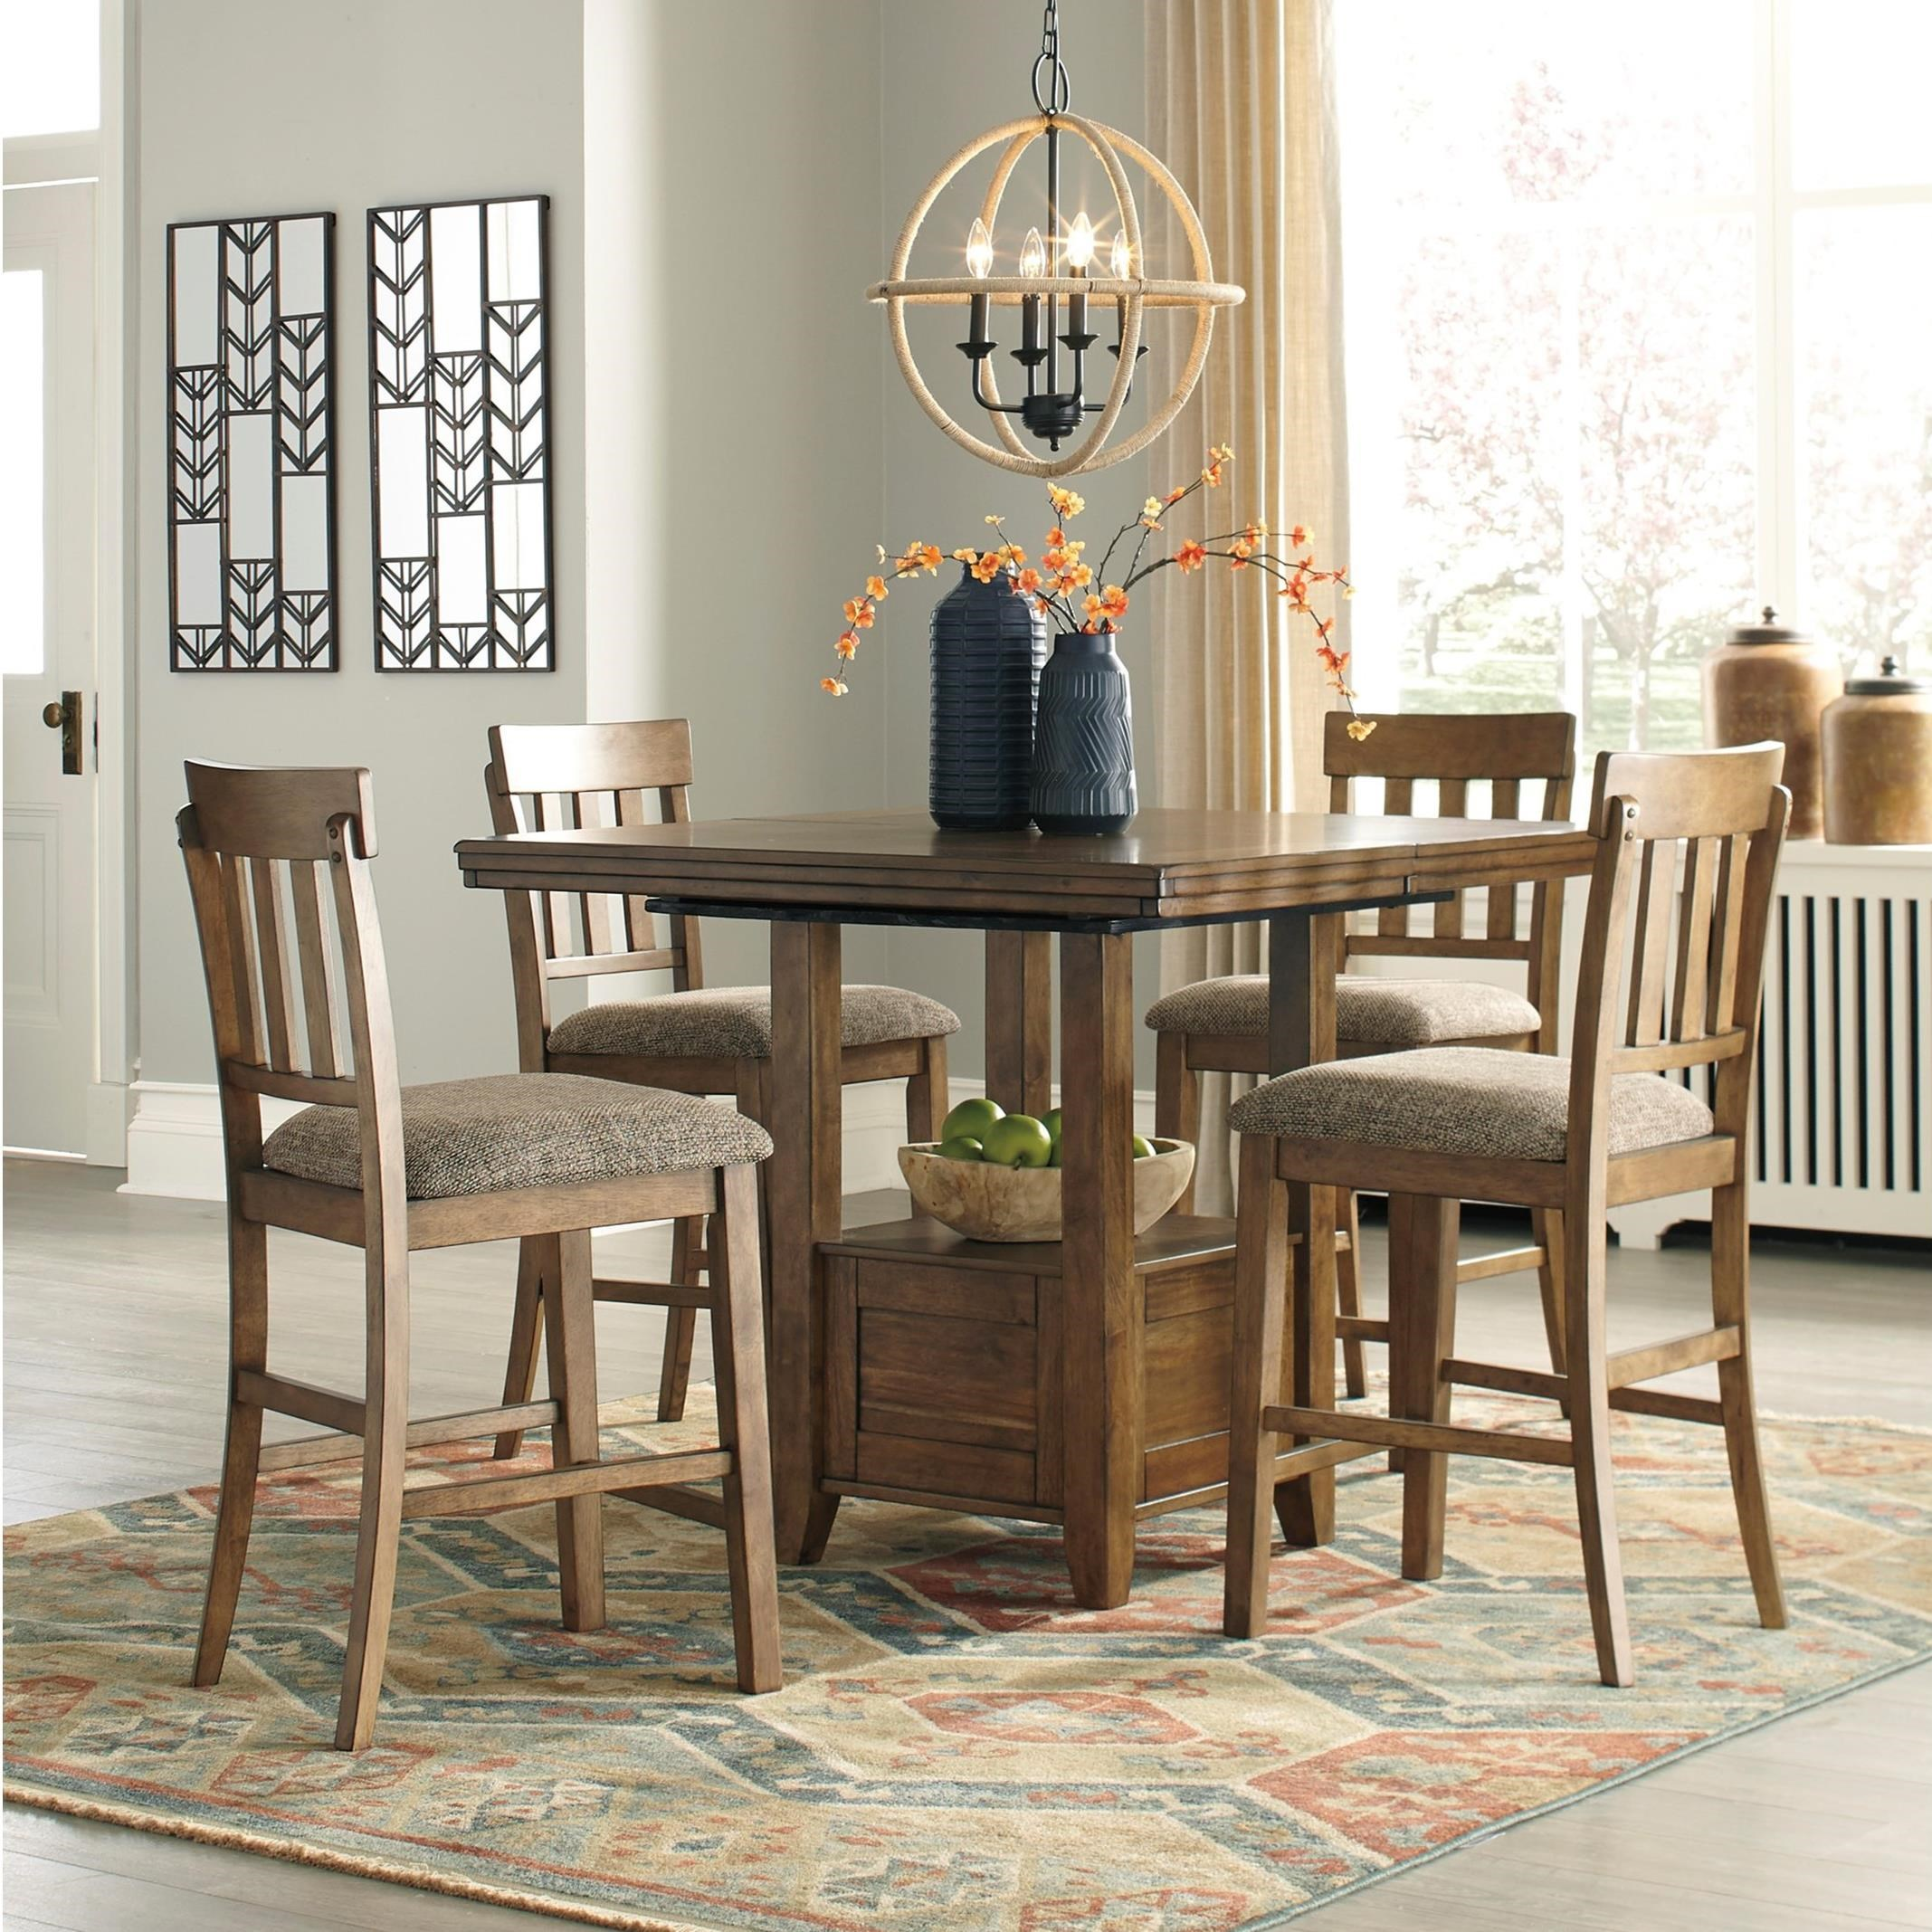 Benchcraft By Ashley Flaybern 5 Piece Pub Dining Set